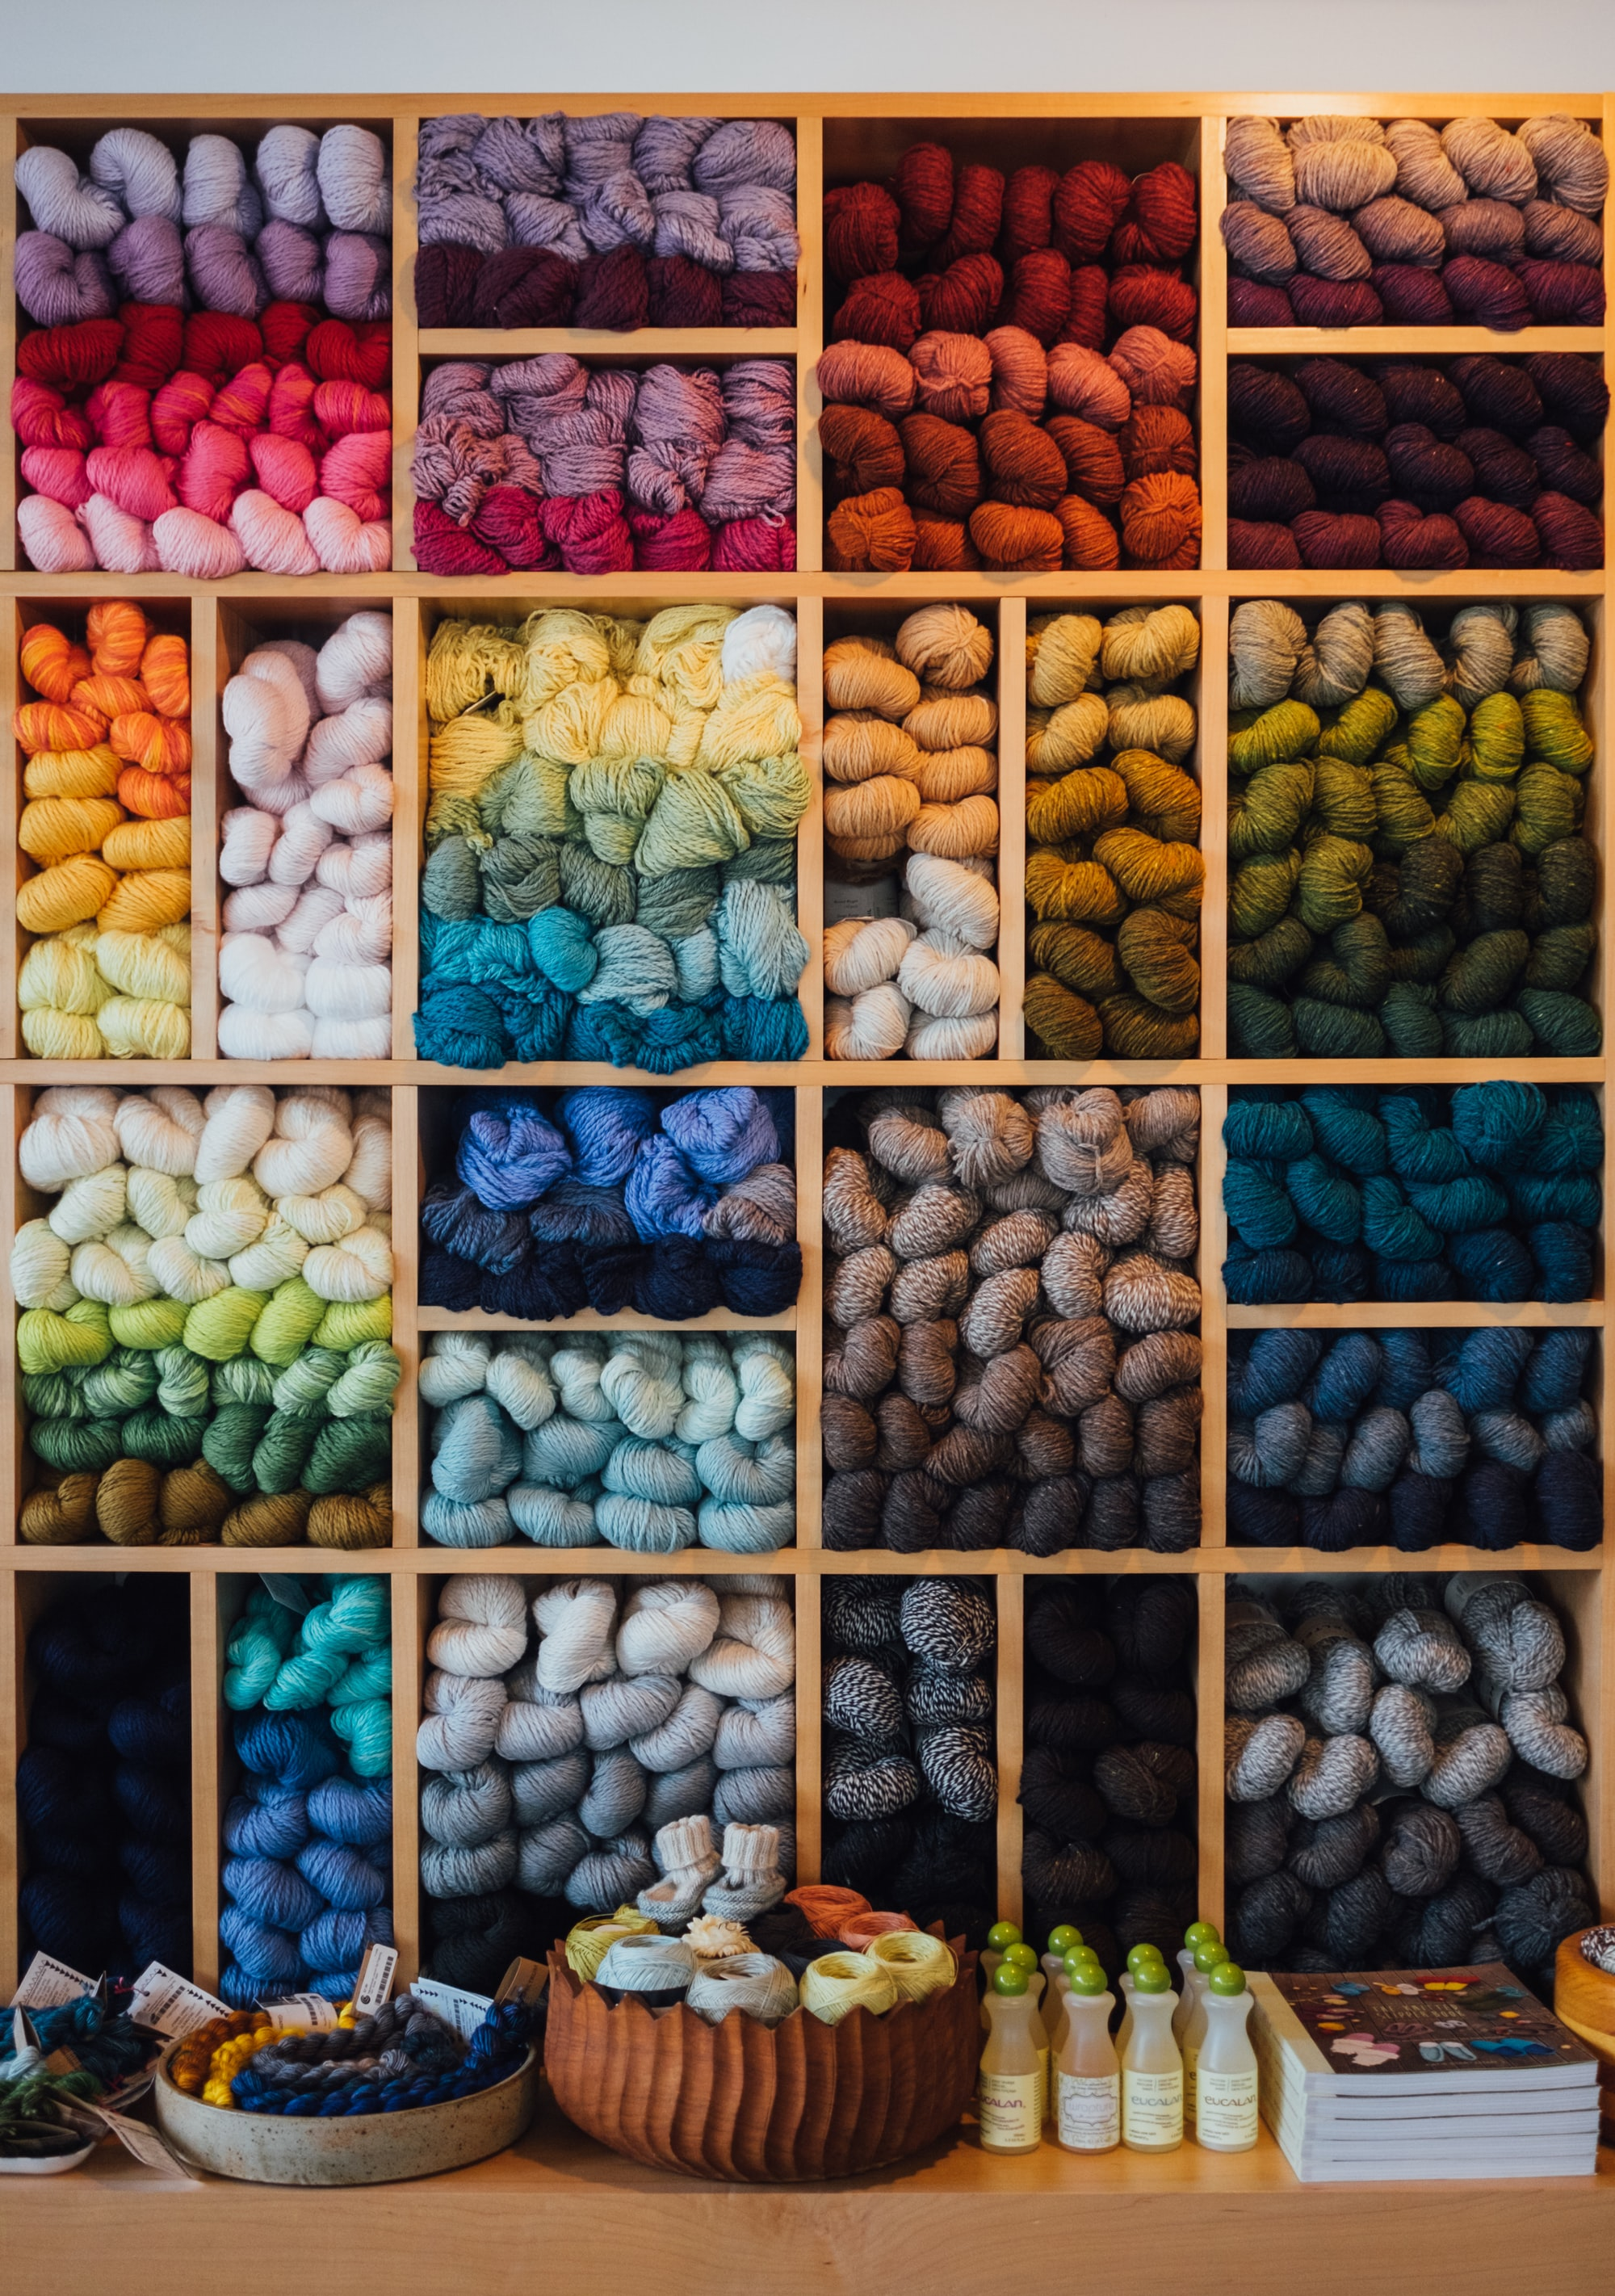 A bunch of different colors of yarn, sorted by color, sit bundled in cubbies.